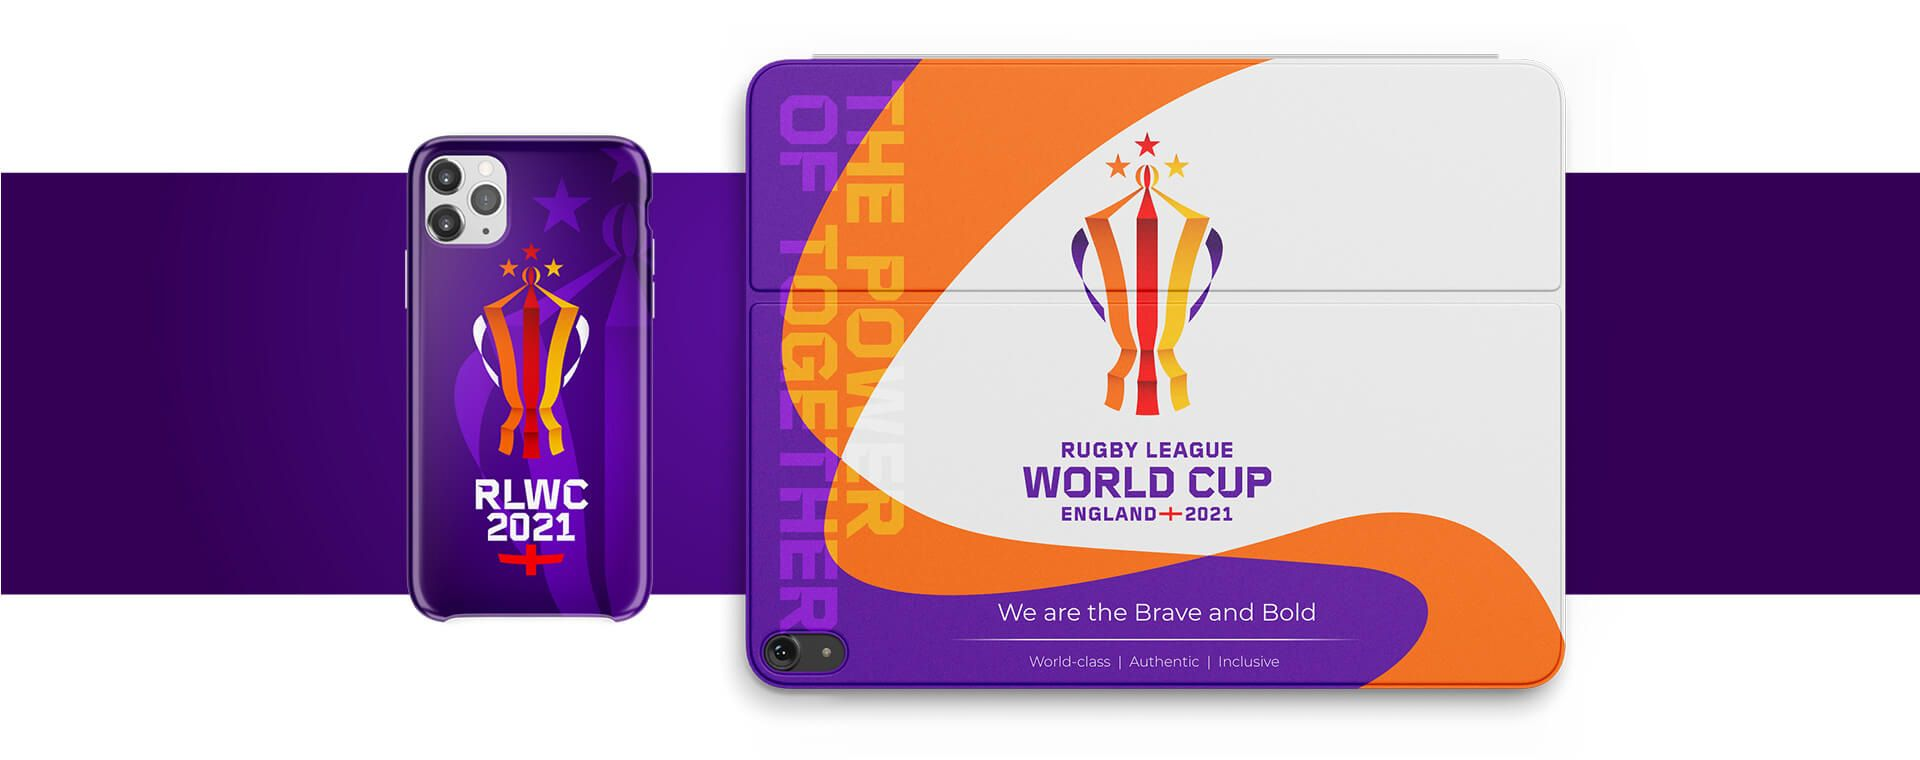 New Logo and Identity for 2021 Rugby League World Cup by